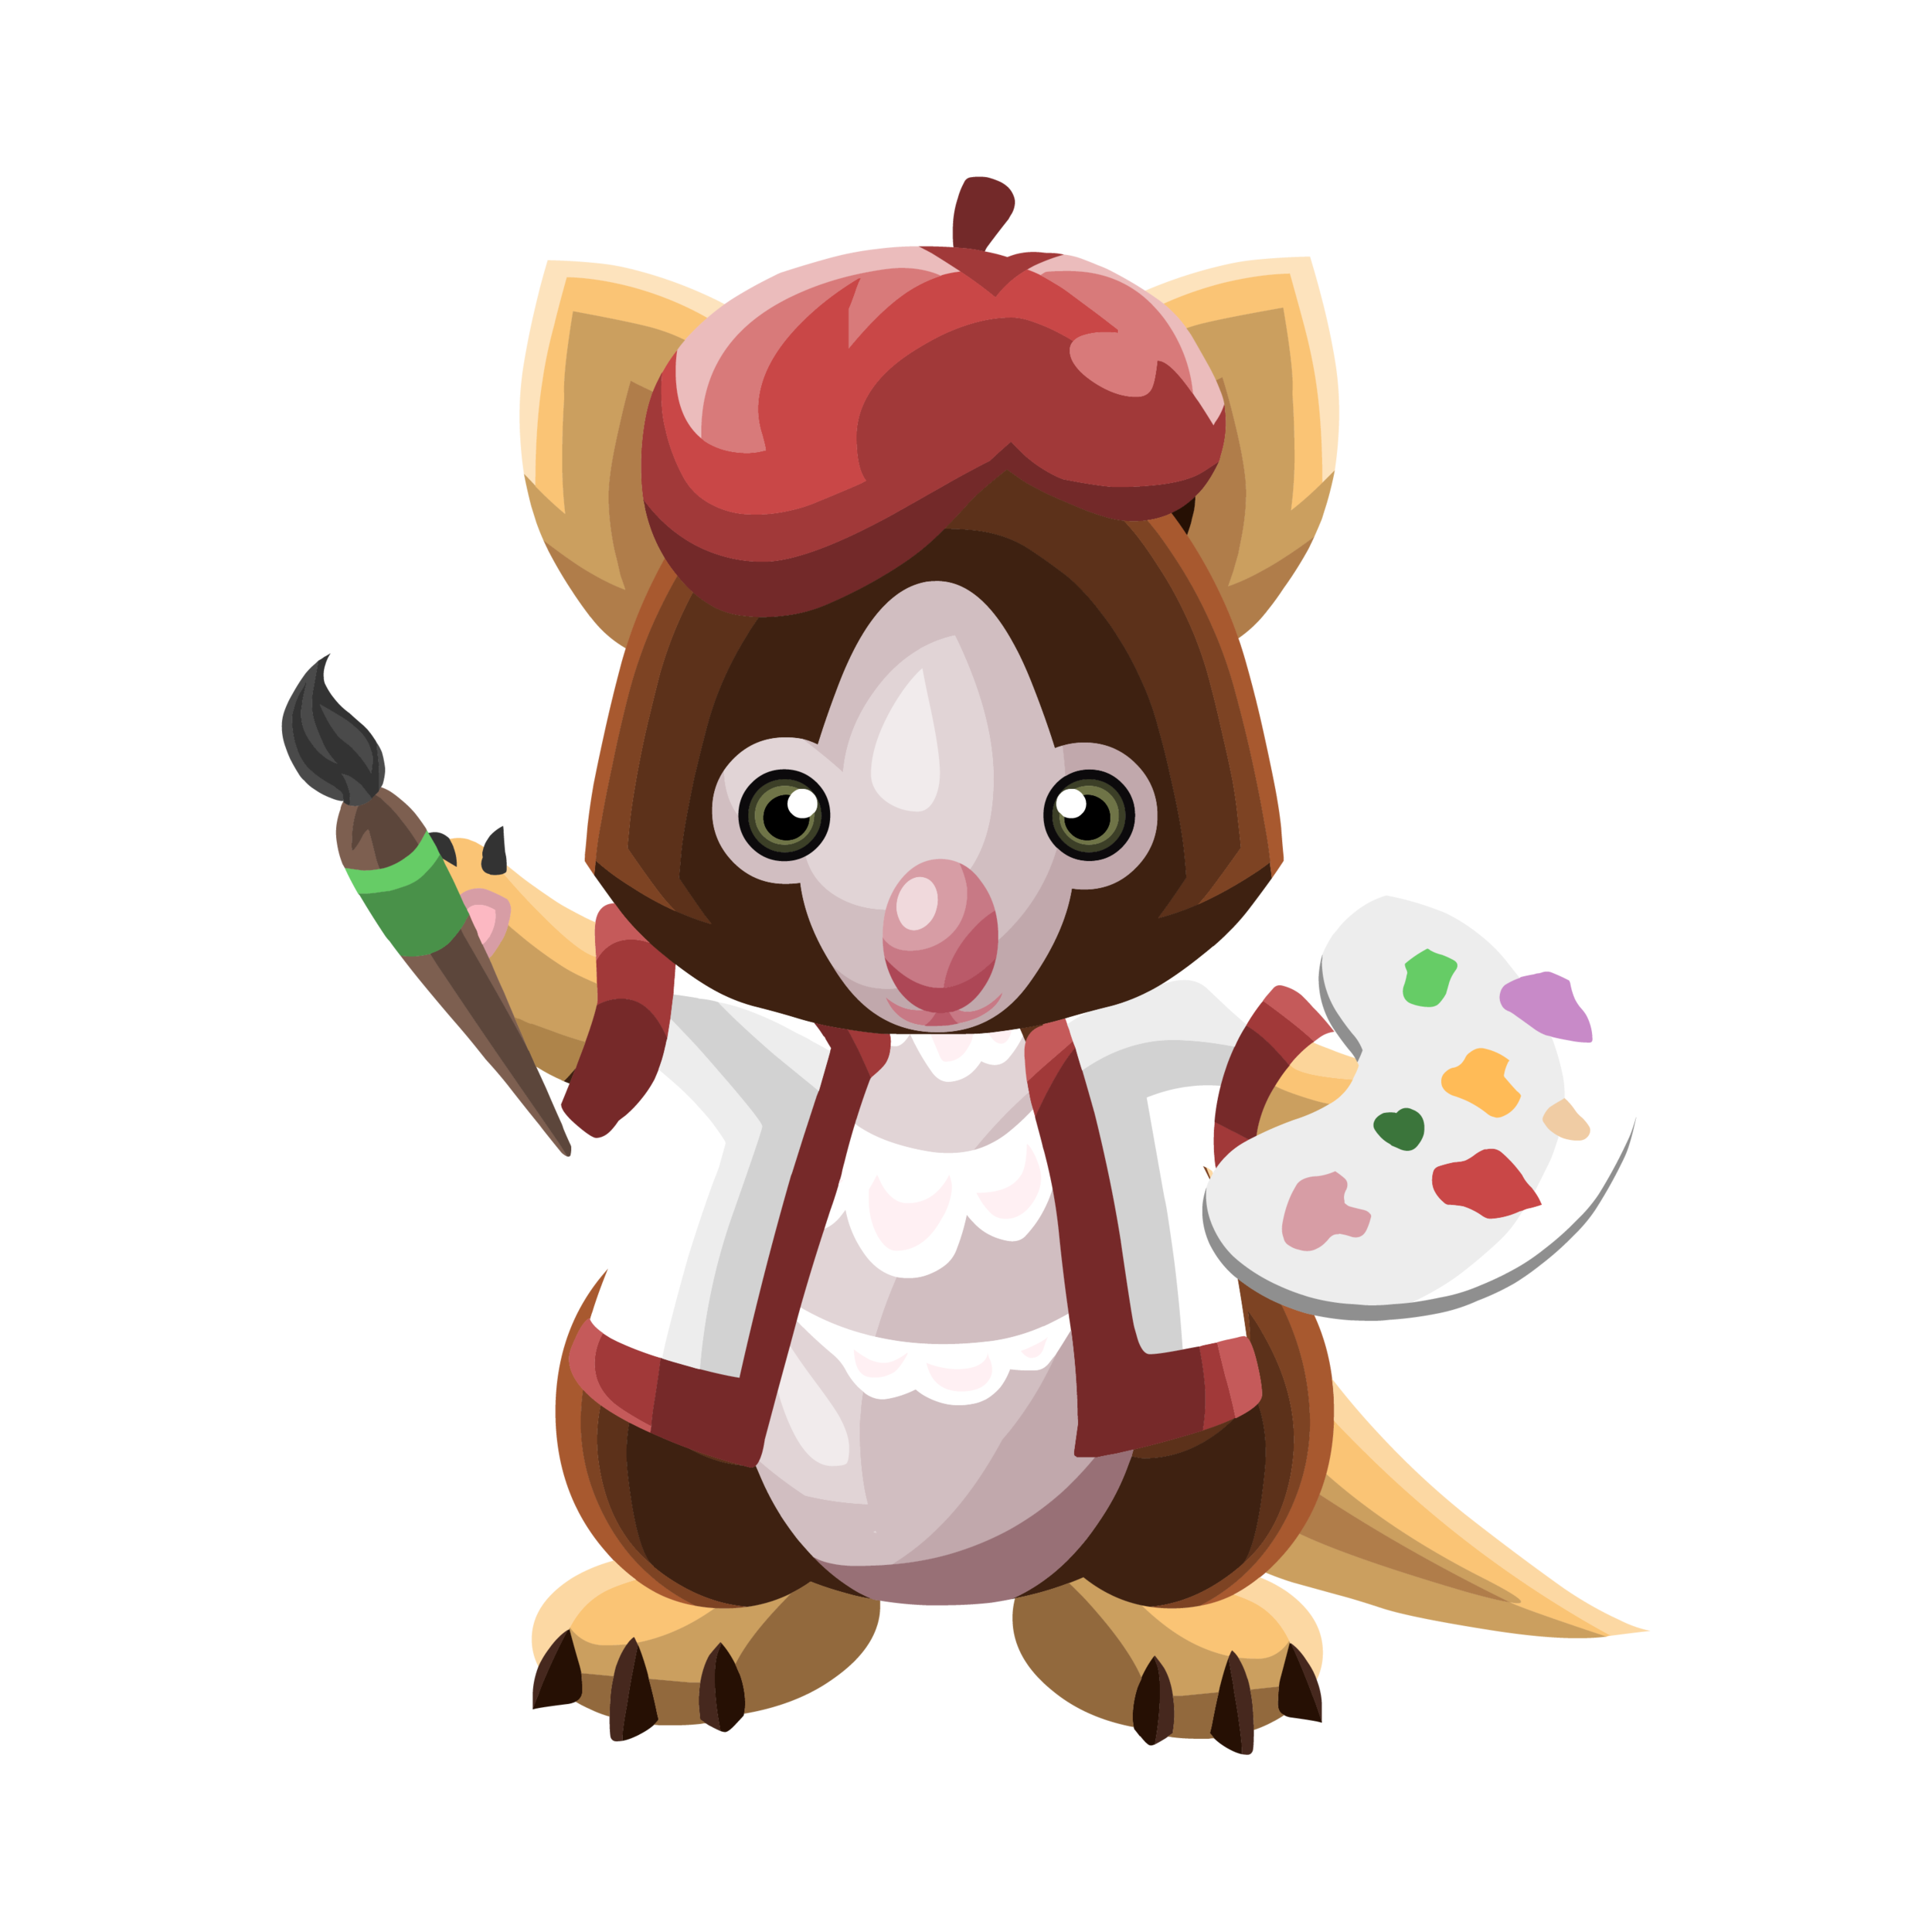 Help us create our new mascot! - Create the Official LearnDelphi.org Mascot to Win Prizes & Bragging RightsWin one of six Amazon gift cards while sharing your artistic talent with the world to shape the character of learning to program with Delphi.